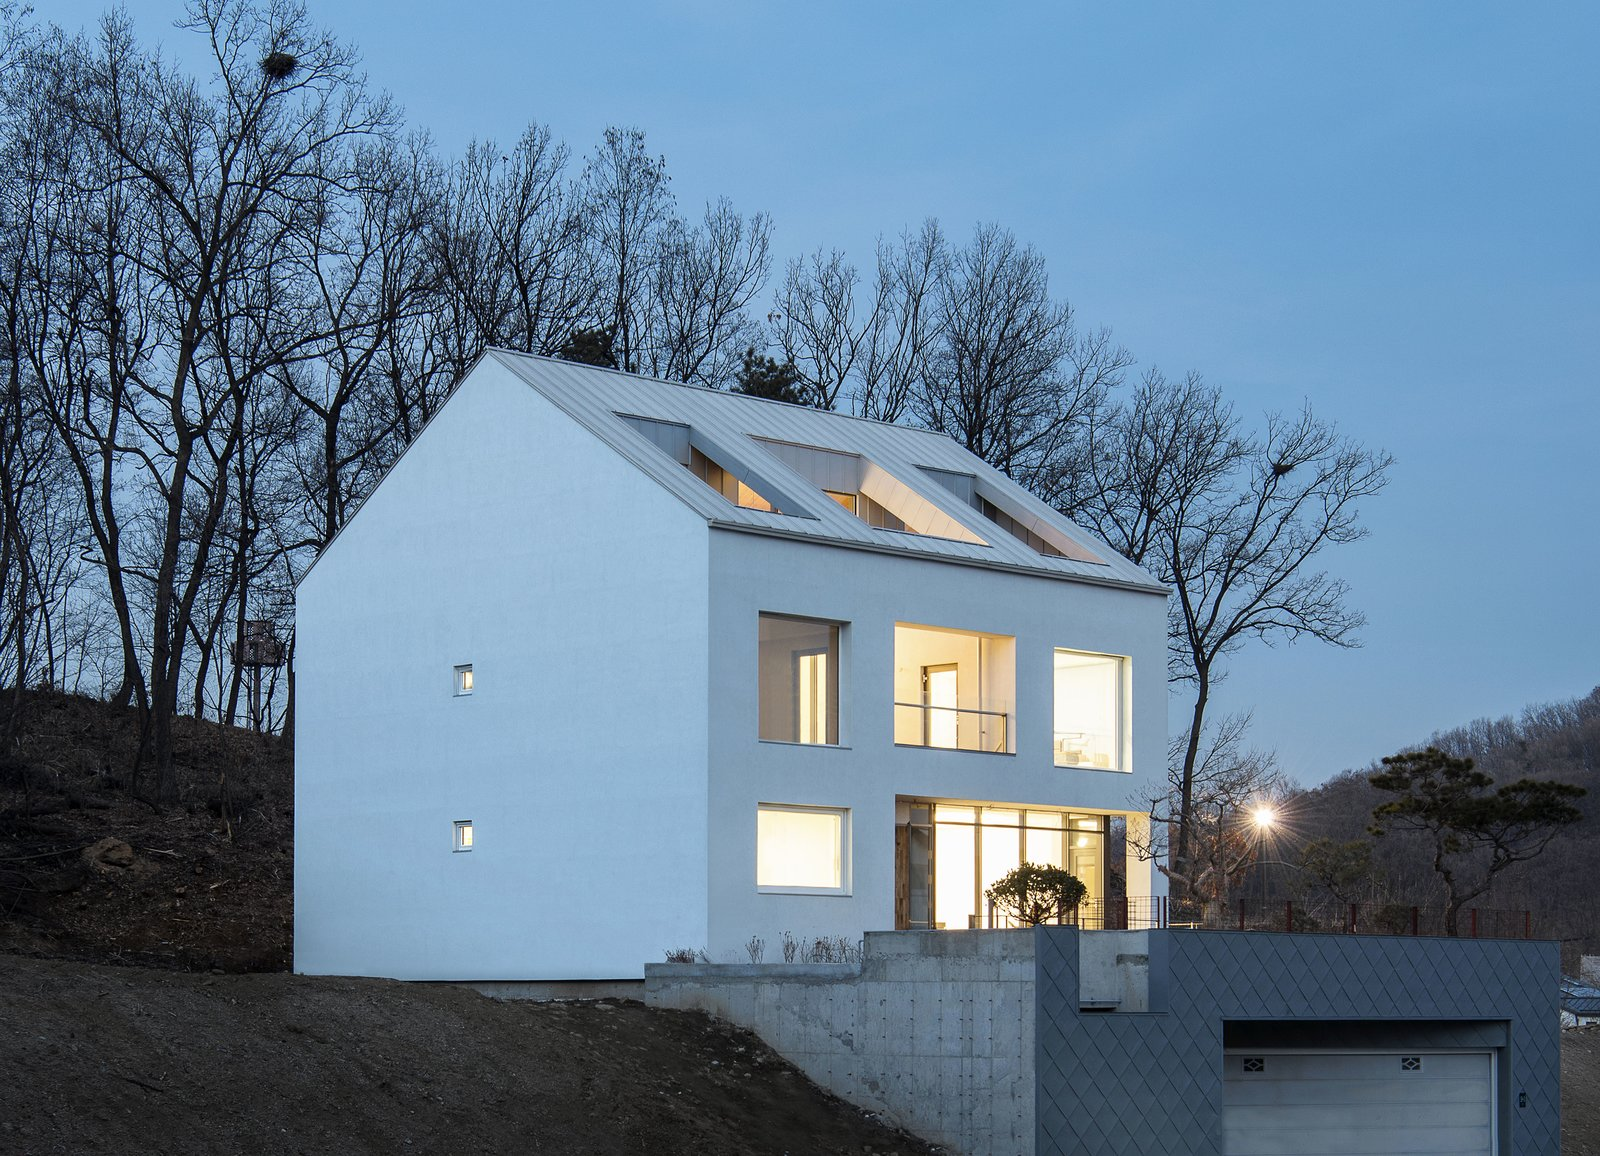 Main Image Tagged: Back Yard, Exterior, Stucco Siding Material, and House.  A House by Chang Kyu Lee